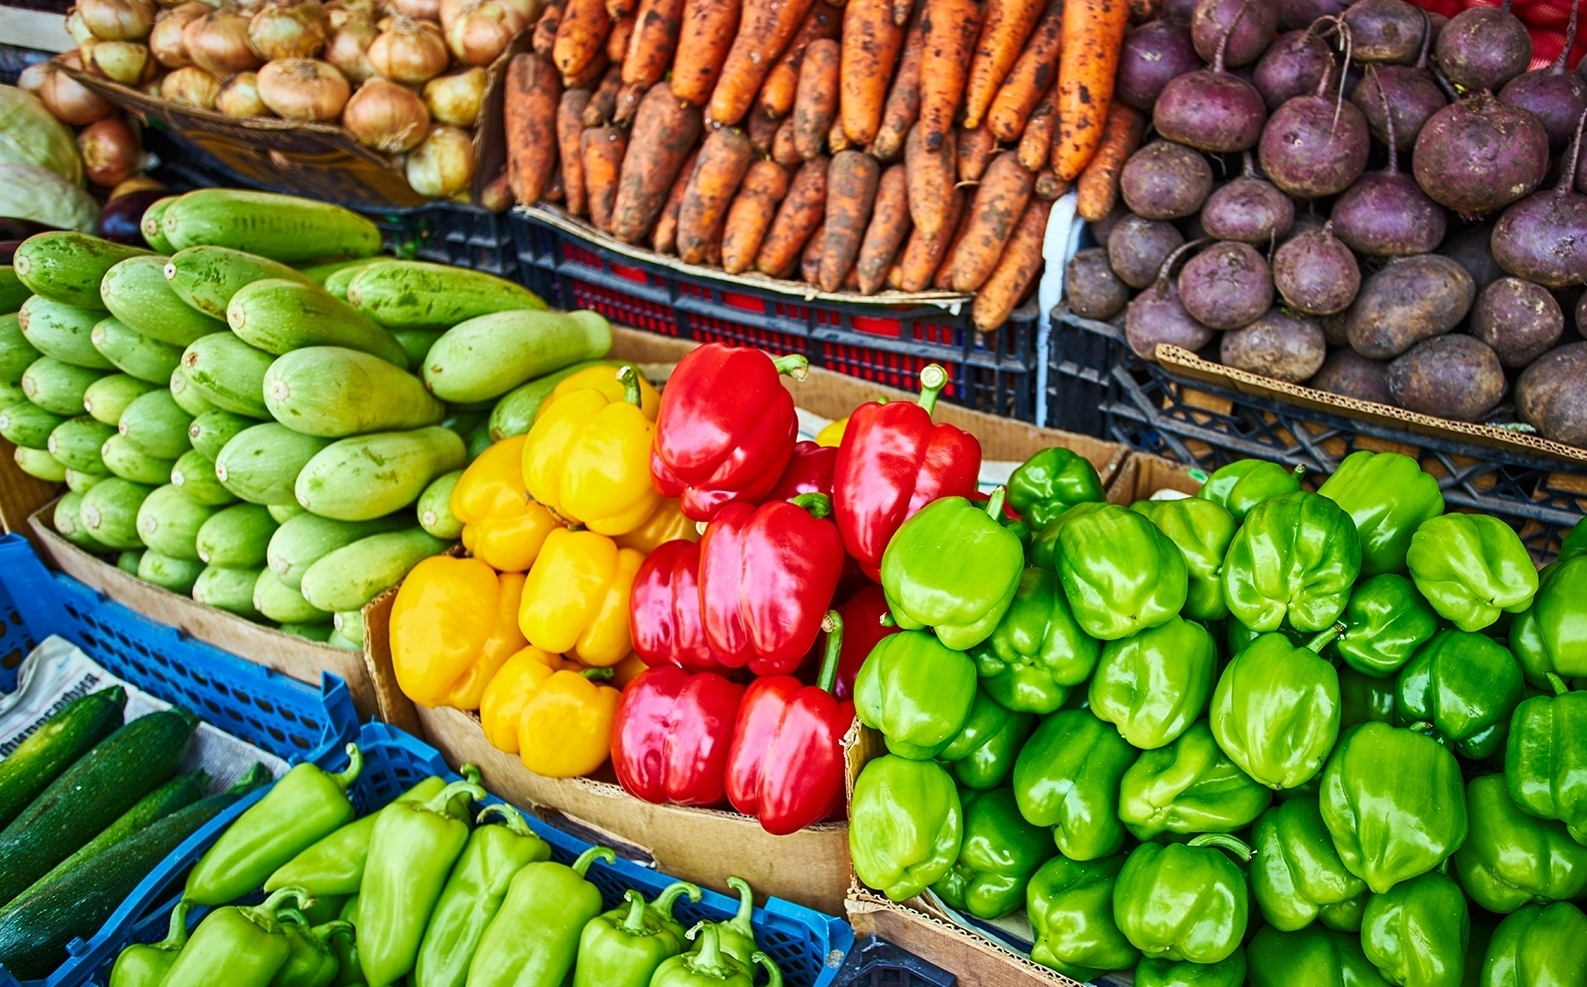 CONVENTIONAL PRODUCE -